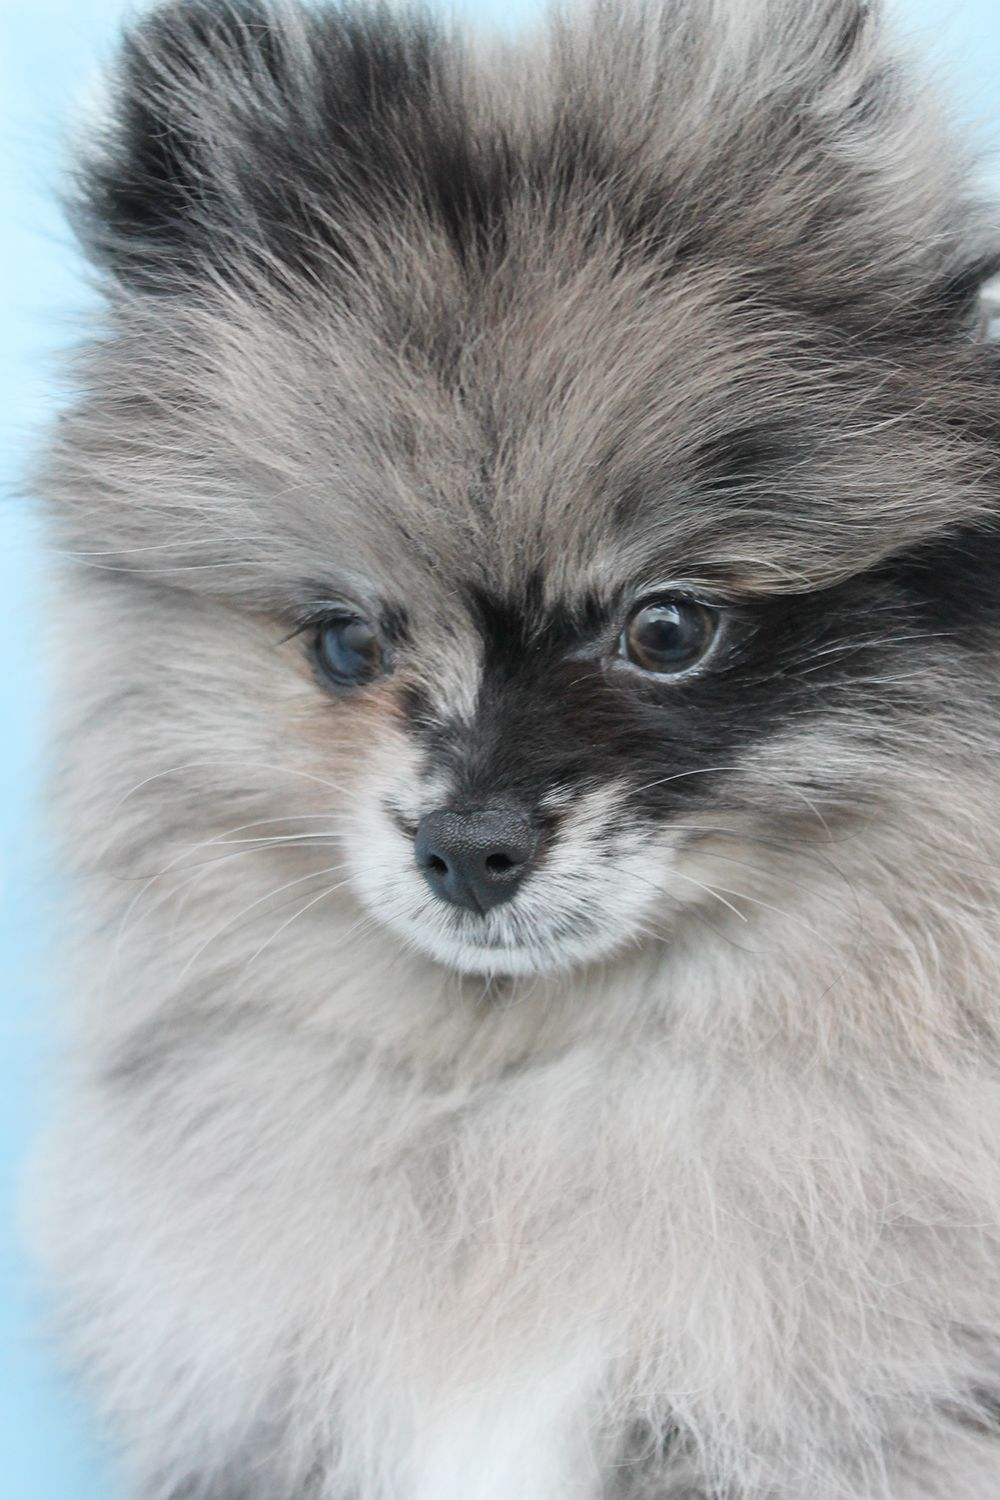 Cute Chicken Nugget Wallpaper Pomeranian Puppies And Teacup Pomeranians For Sale At